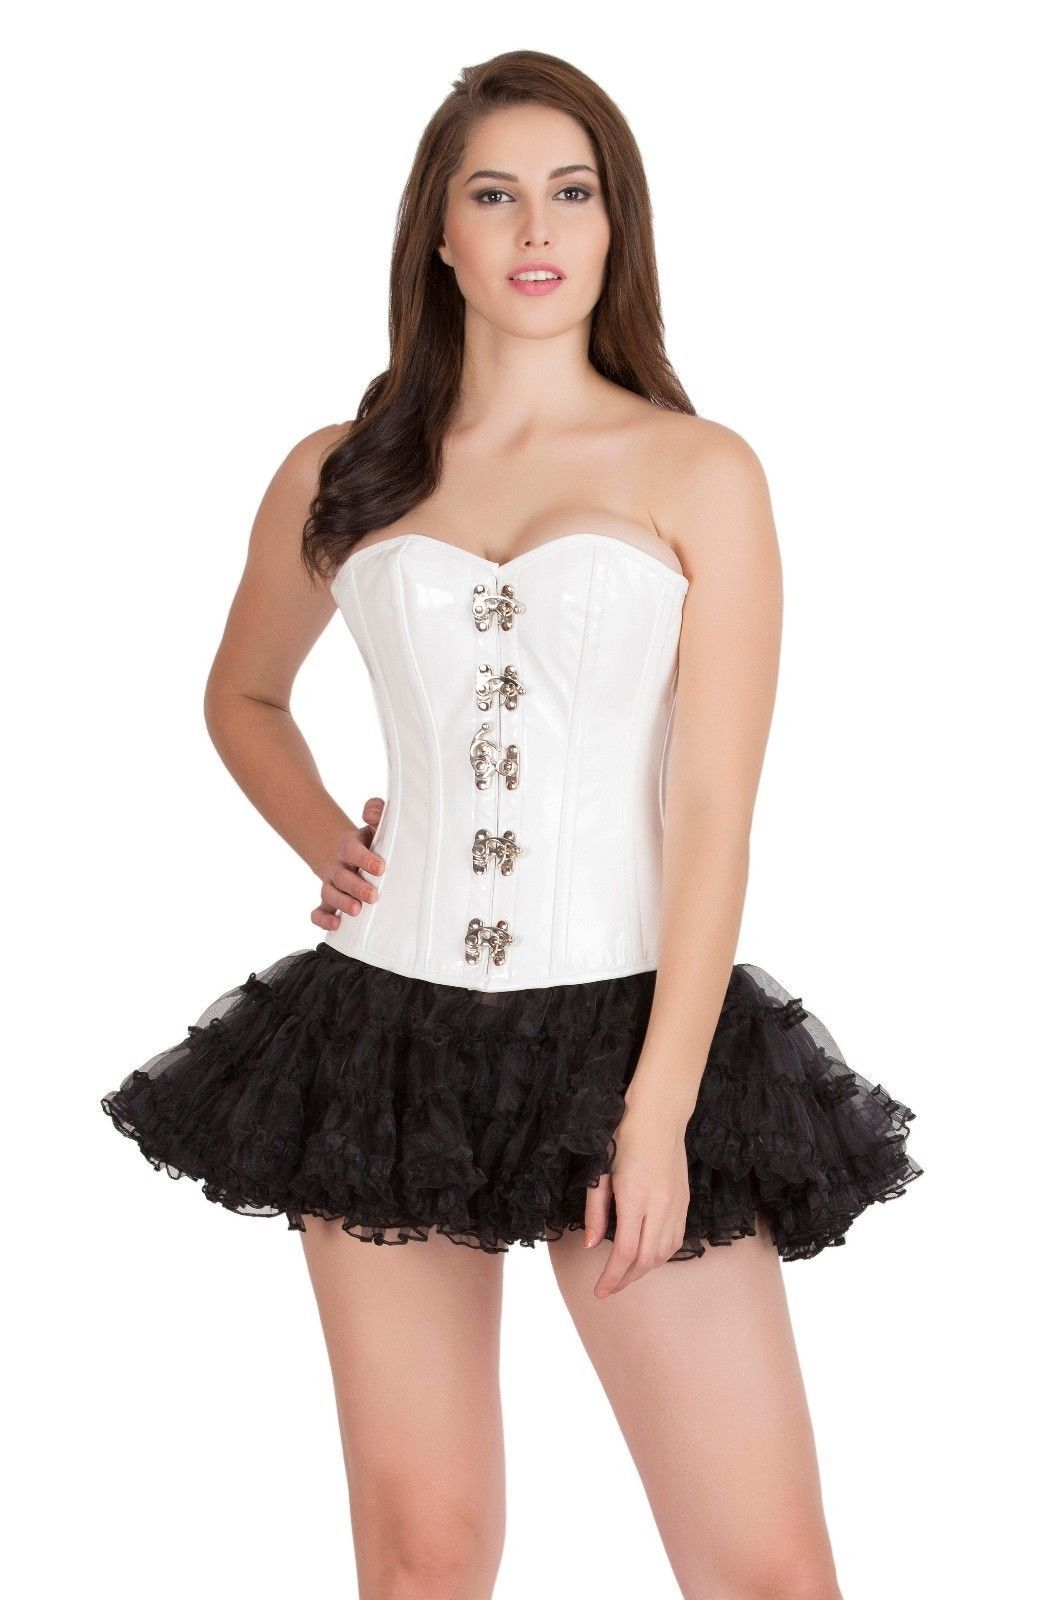 a7010964930 57. 57. Previous. White PVC faux leather Goth Burlesque Steampunk tutu Skirt  Overbust Corset Dress